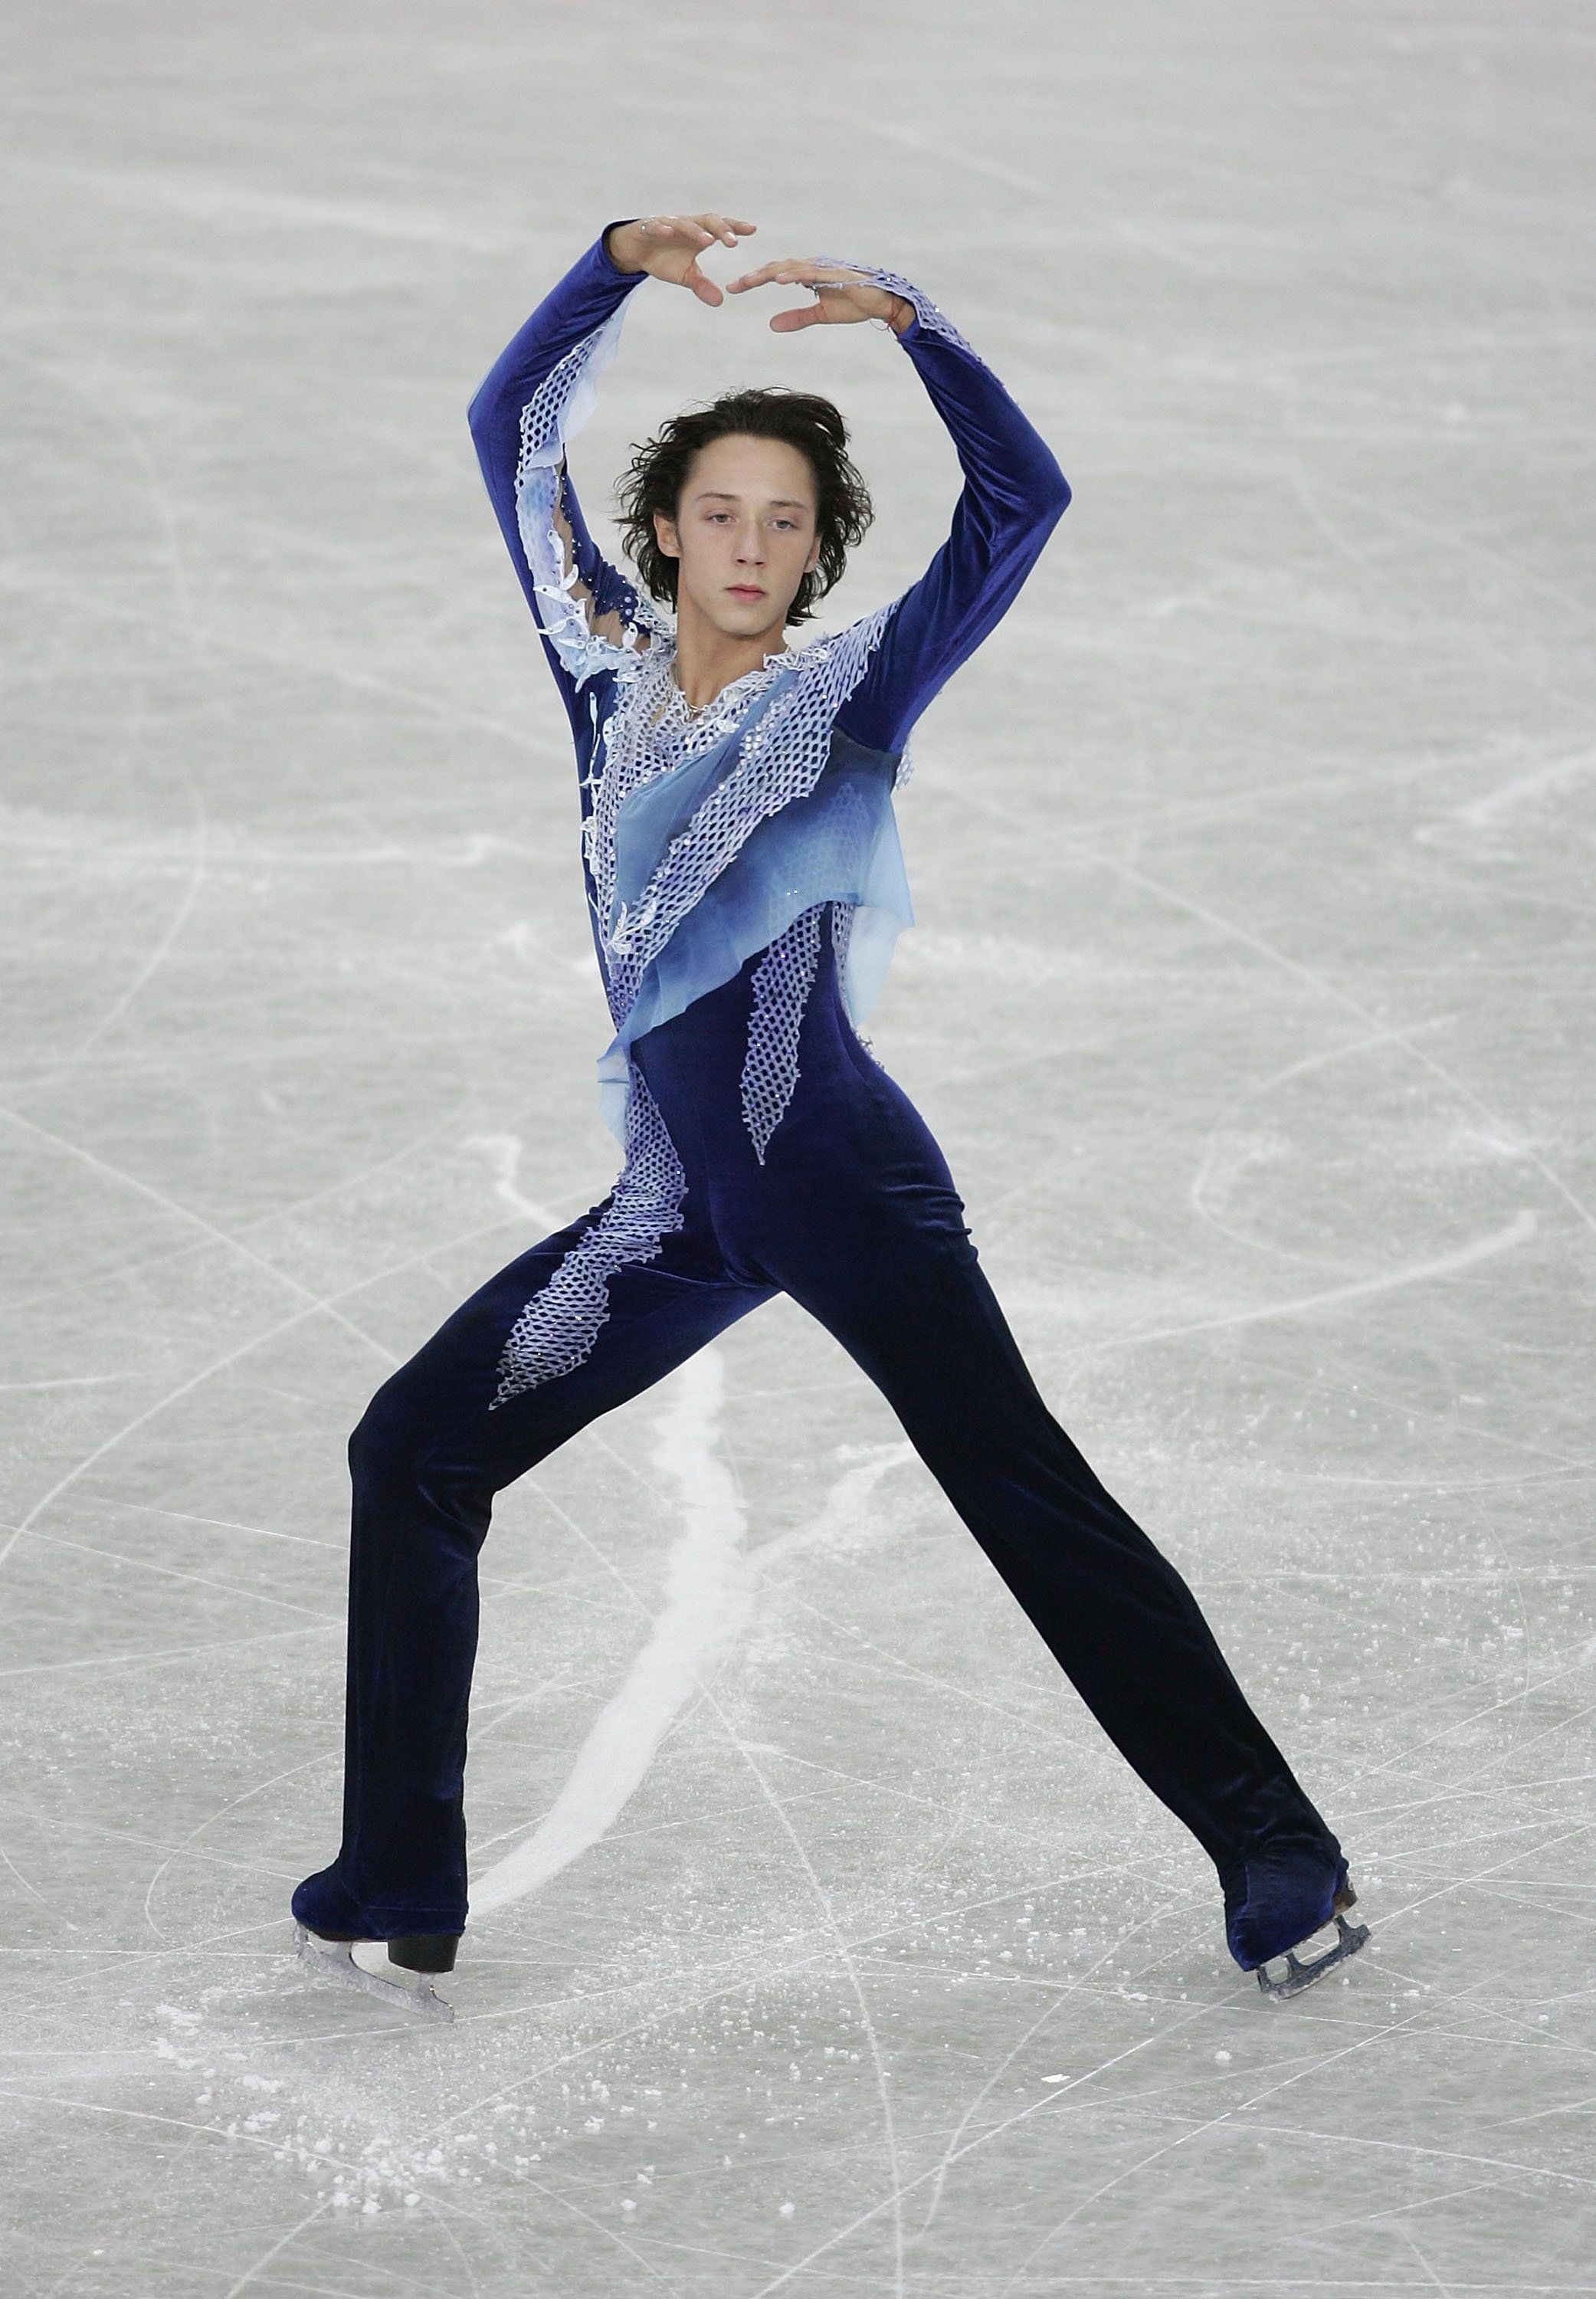 Performing during the men's qualifying free skate at the ISU World Figure Skating Championships at the Luzhniki Sports P